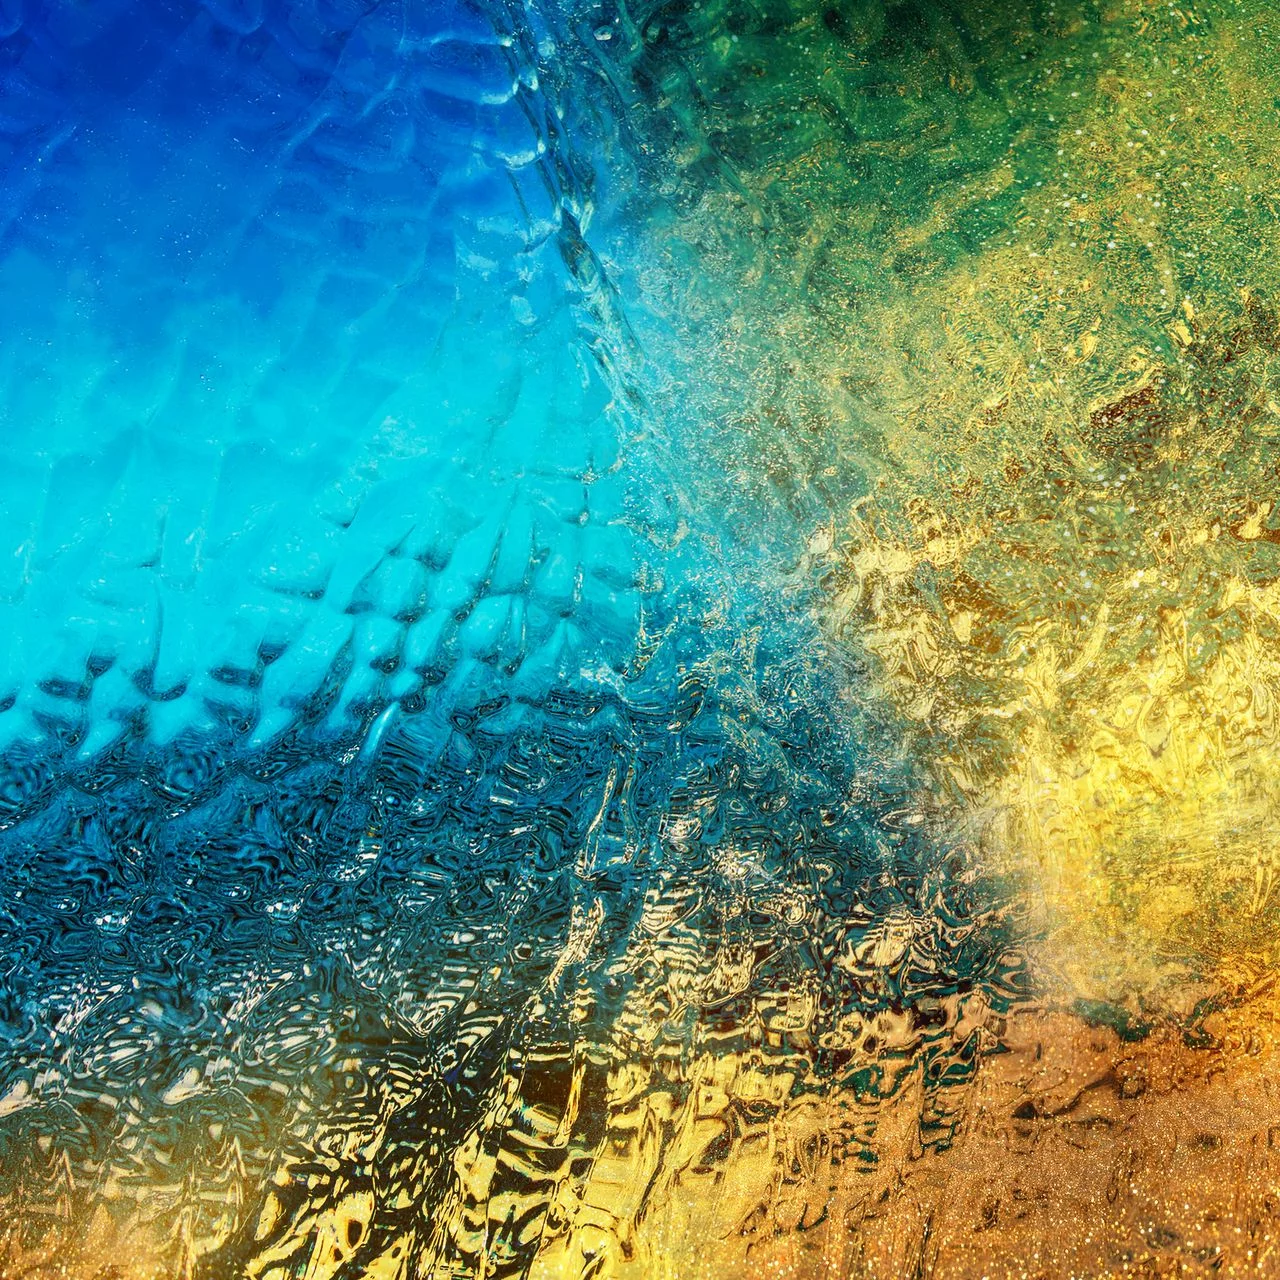 Samsung Galaxy E7 And Galaxy A7 Wallpapers Available Talkandroid Com